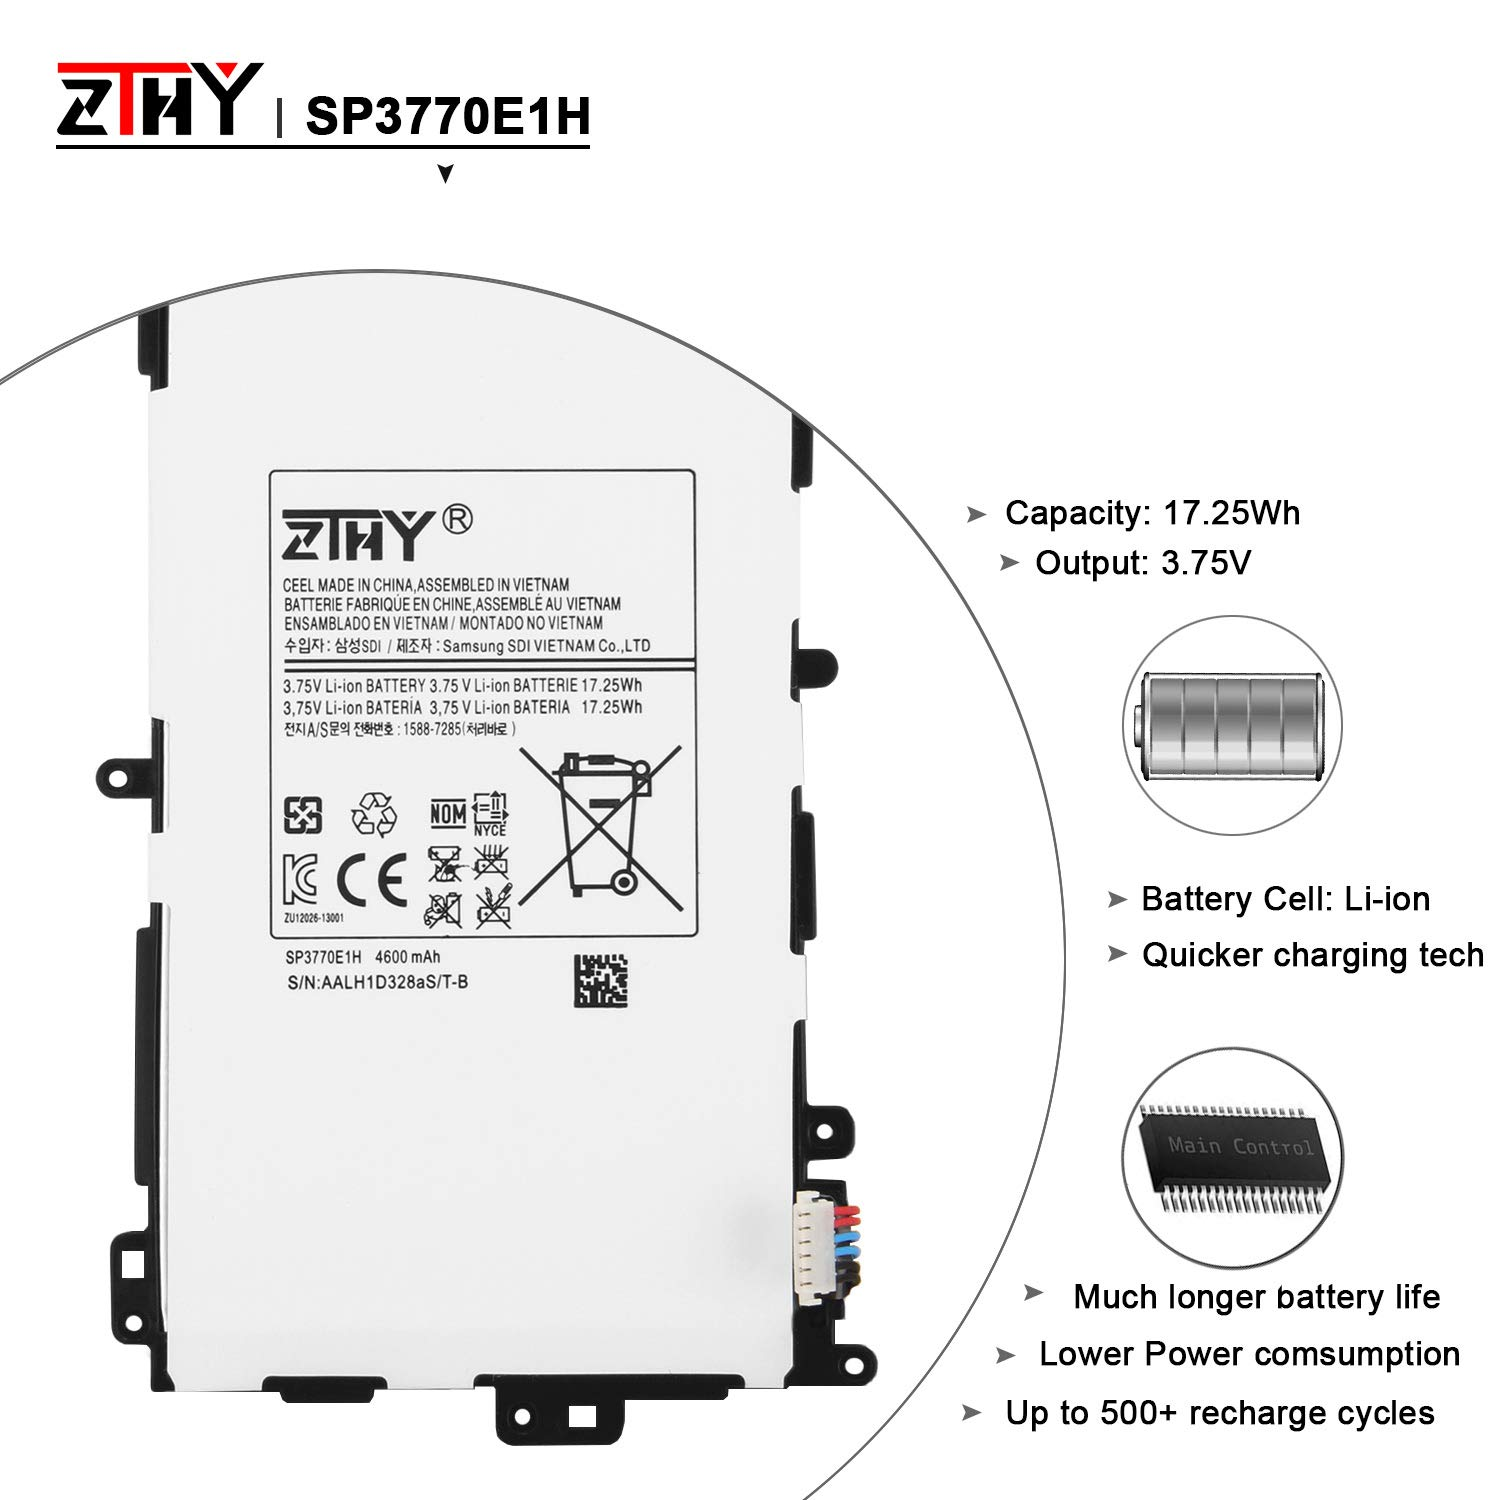 ZTHY Compatible New SP3770E1H Tablet Battery Replacement for Samsung Galaxy Note 8.0 GT-N5110 N5100 N5120 N5110 Series SGH-i467 3.75v 4600mAh With Tools by ZTHY (Image #2)